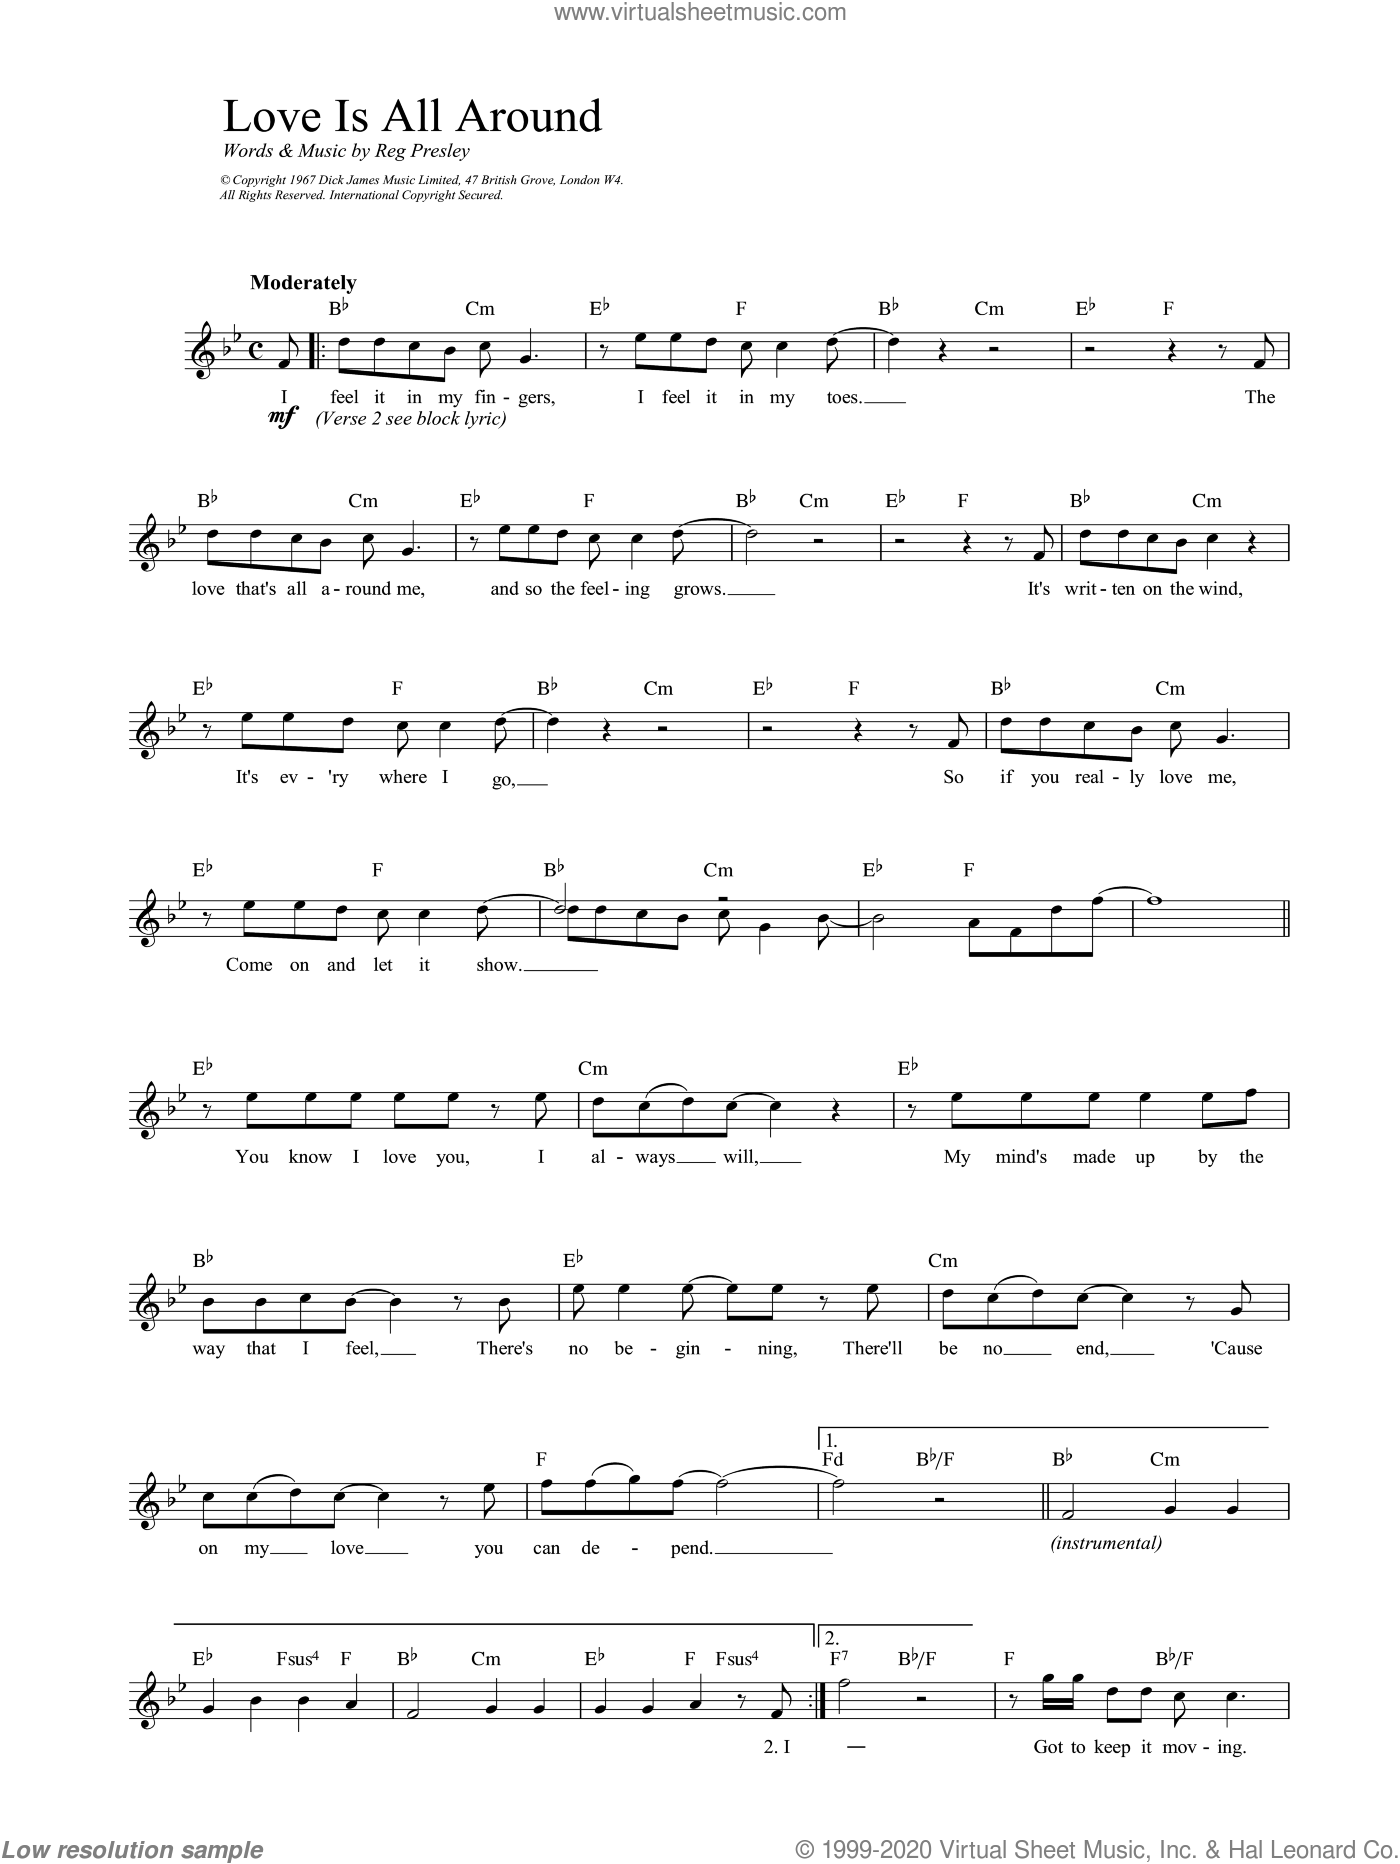 Love Is All Around sheet music for voice and other instruments (fake book) by Reg Presley